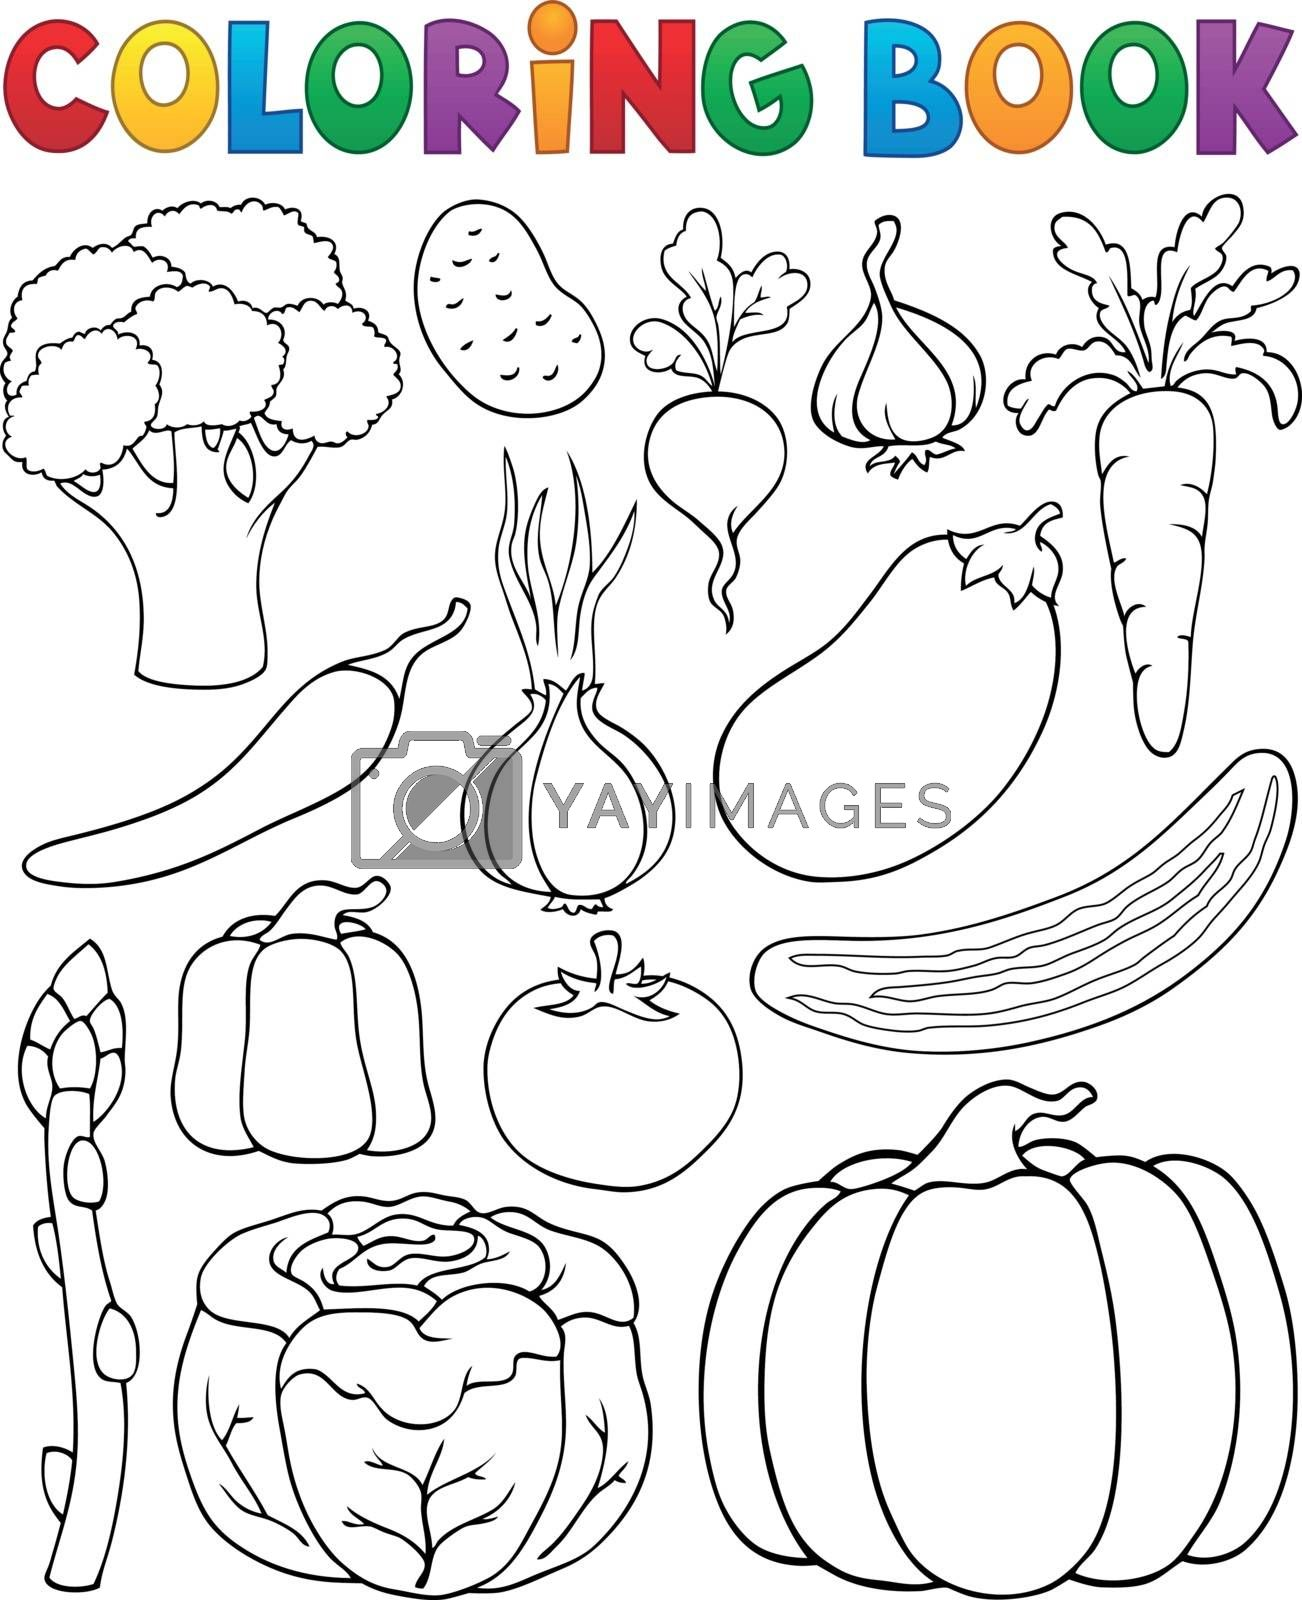 Coloring book vegetable collection 1 - eps10 vector illustration.